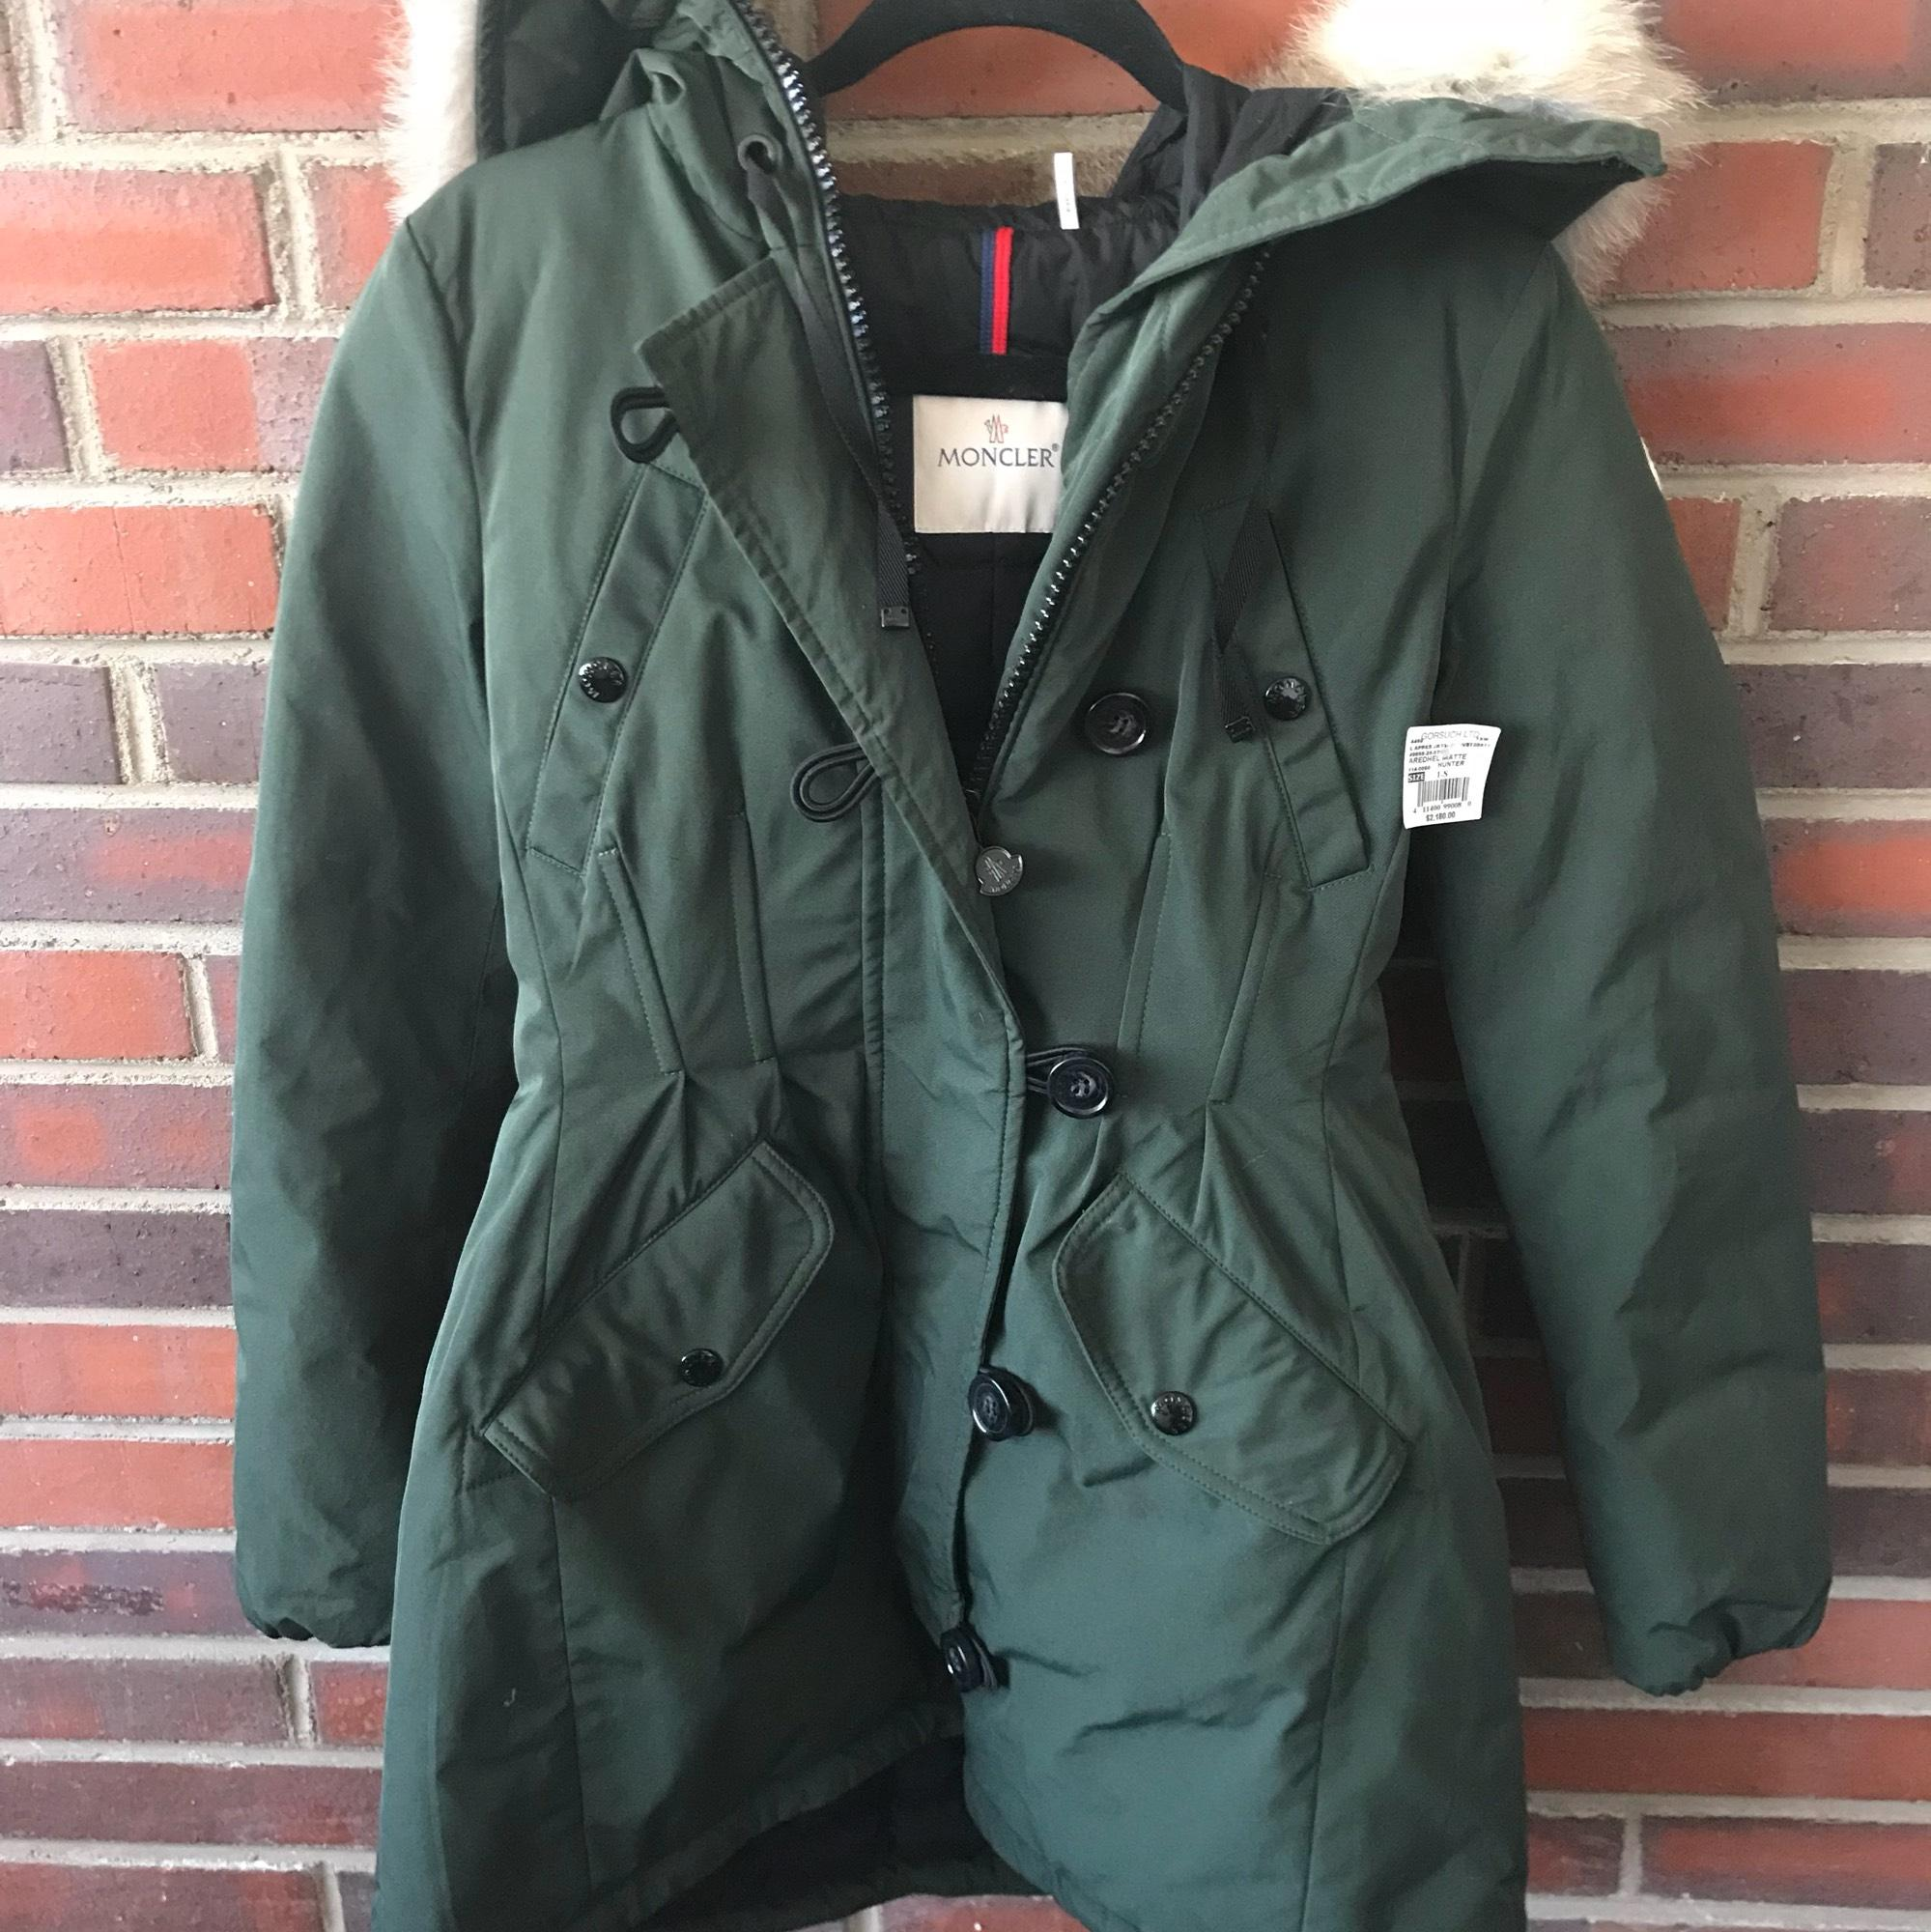 moncler jacket buy now pay later